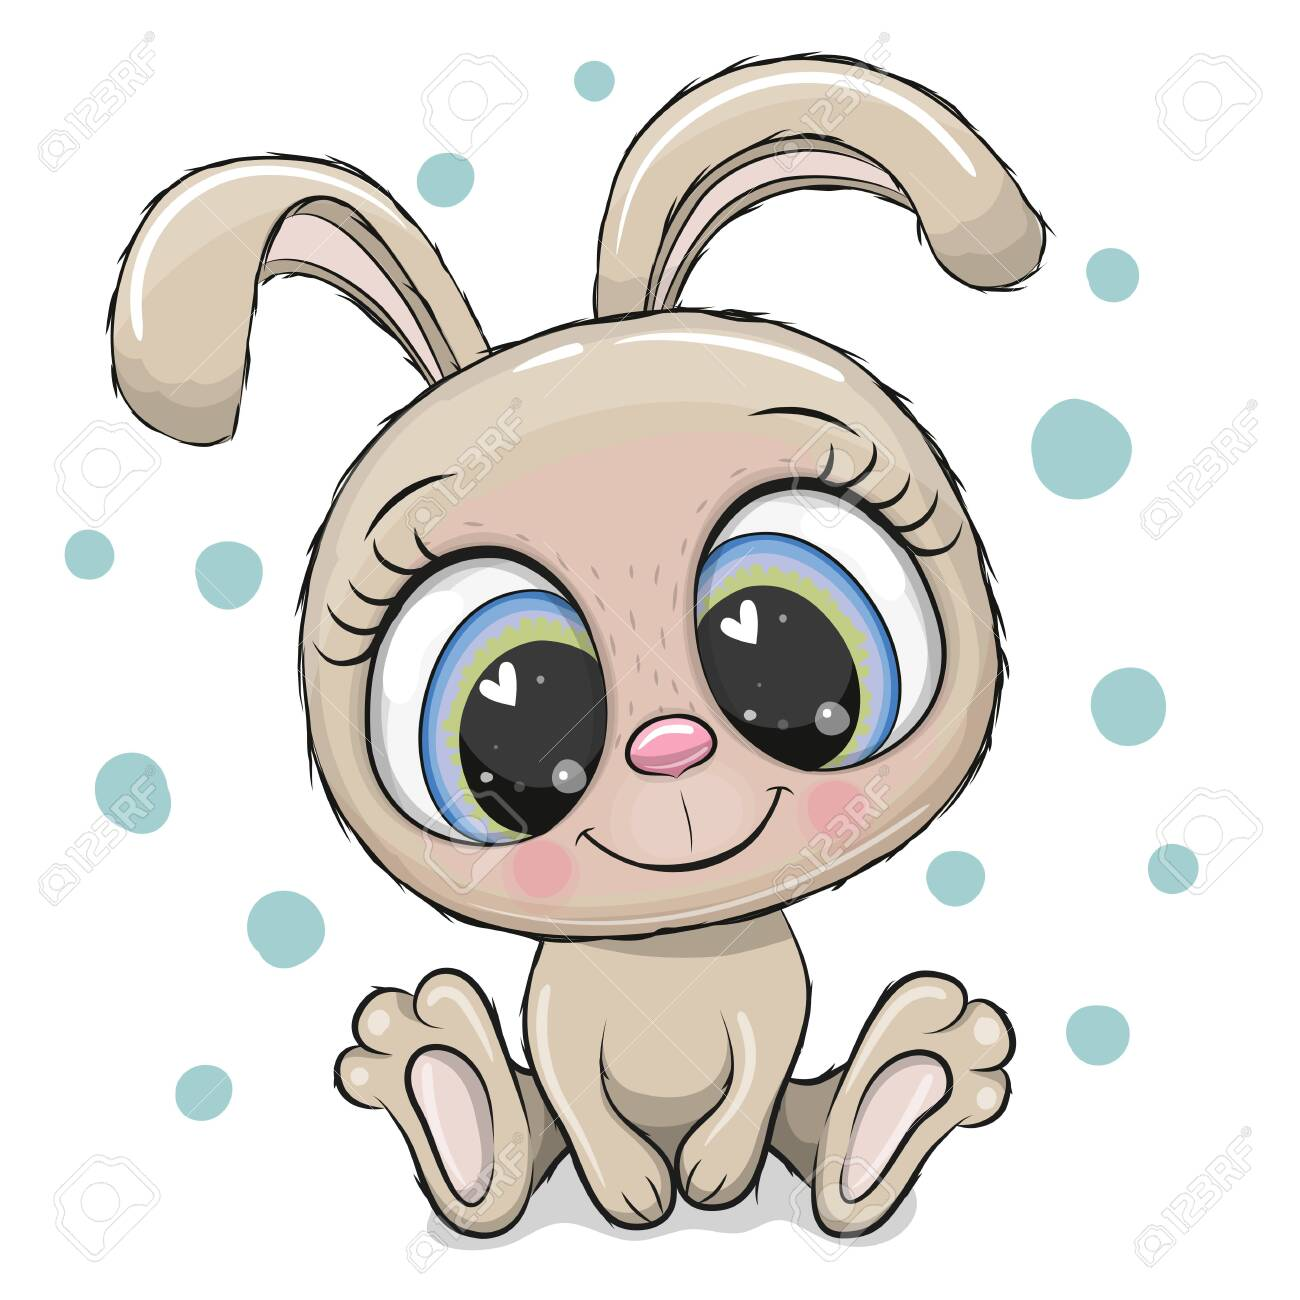 Cute Cartoon Rabbit With Big Eyes Isolated On A White Background